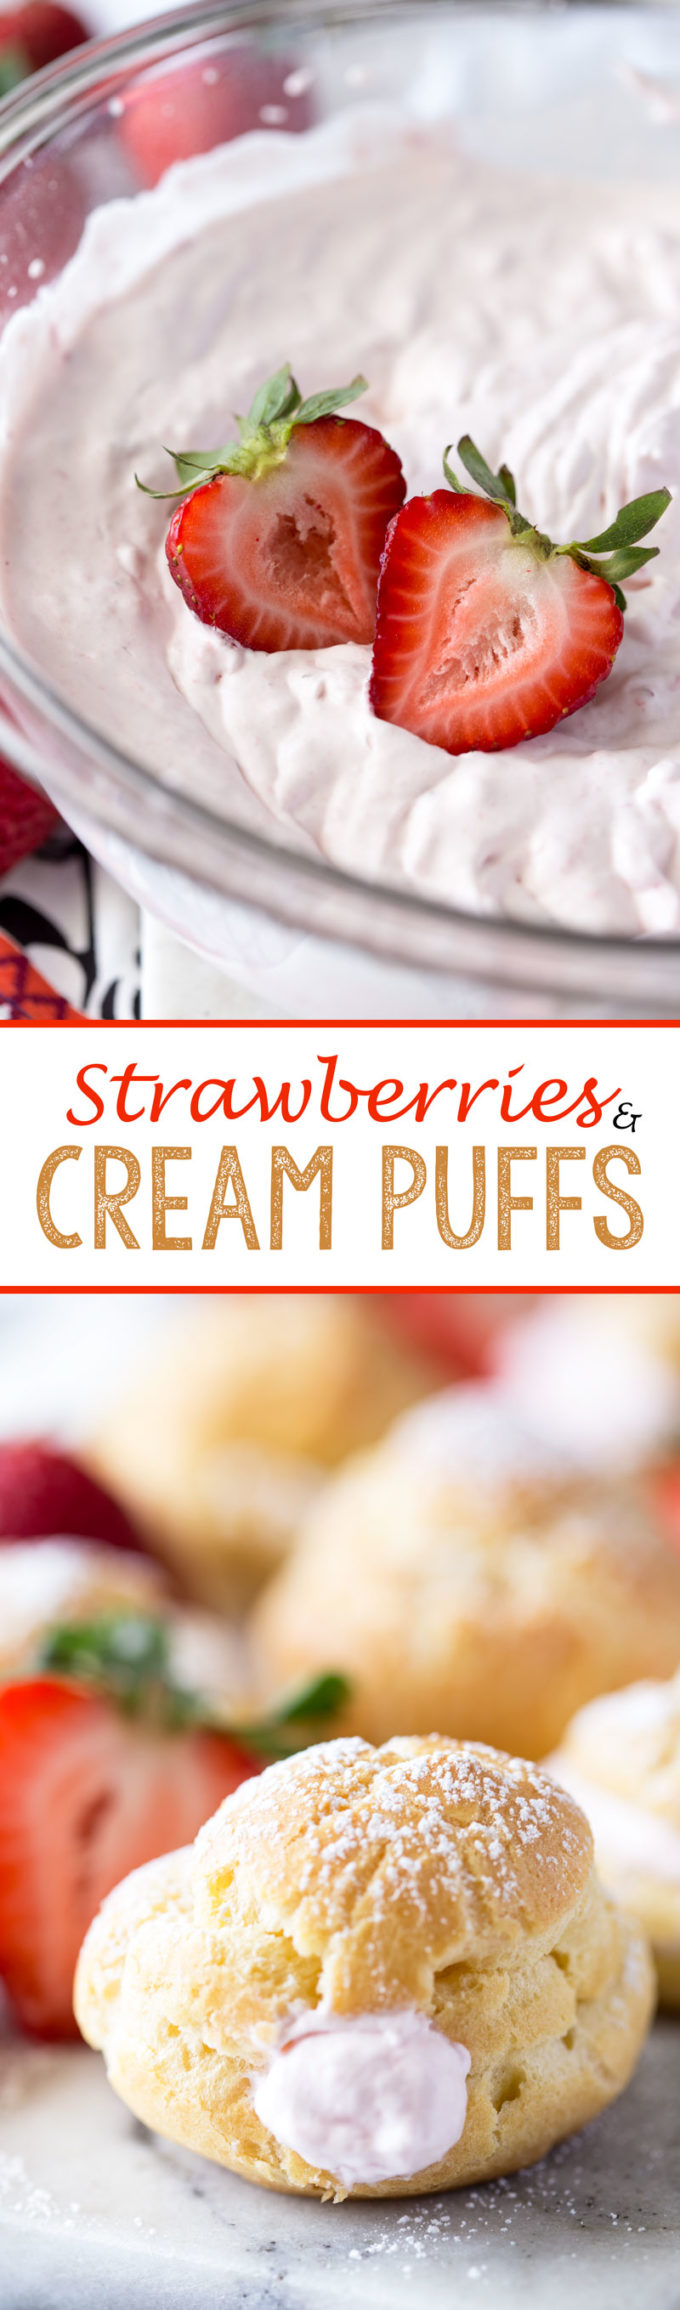 I could barely wait for the puffs to cool, I wanted to gobble them down! Strawberries and Cream Puffs!